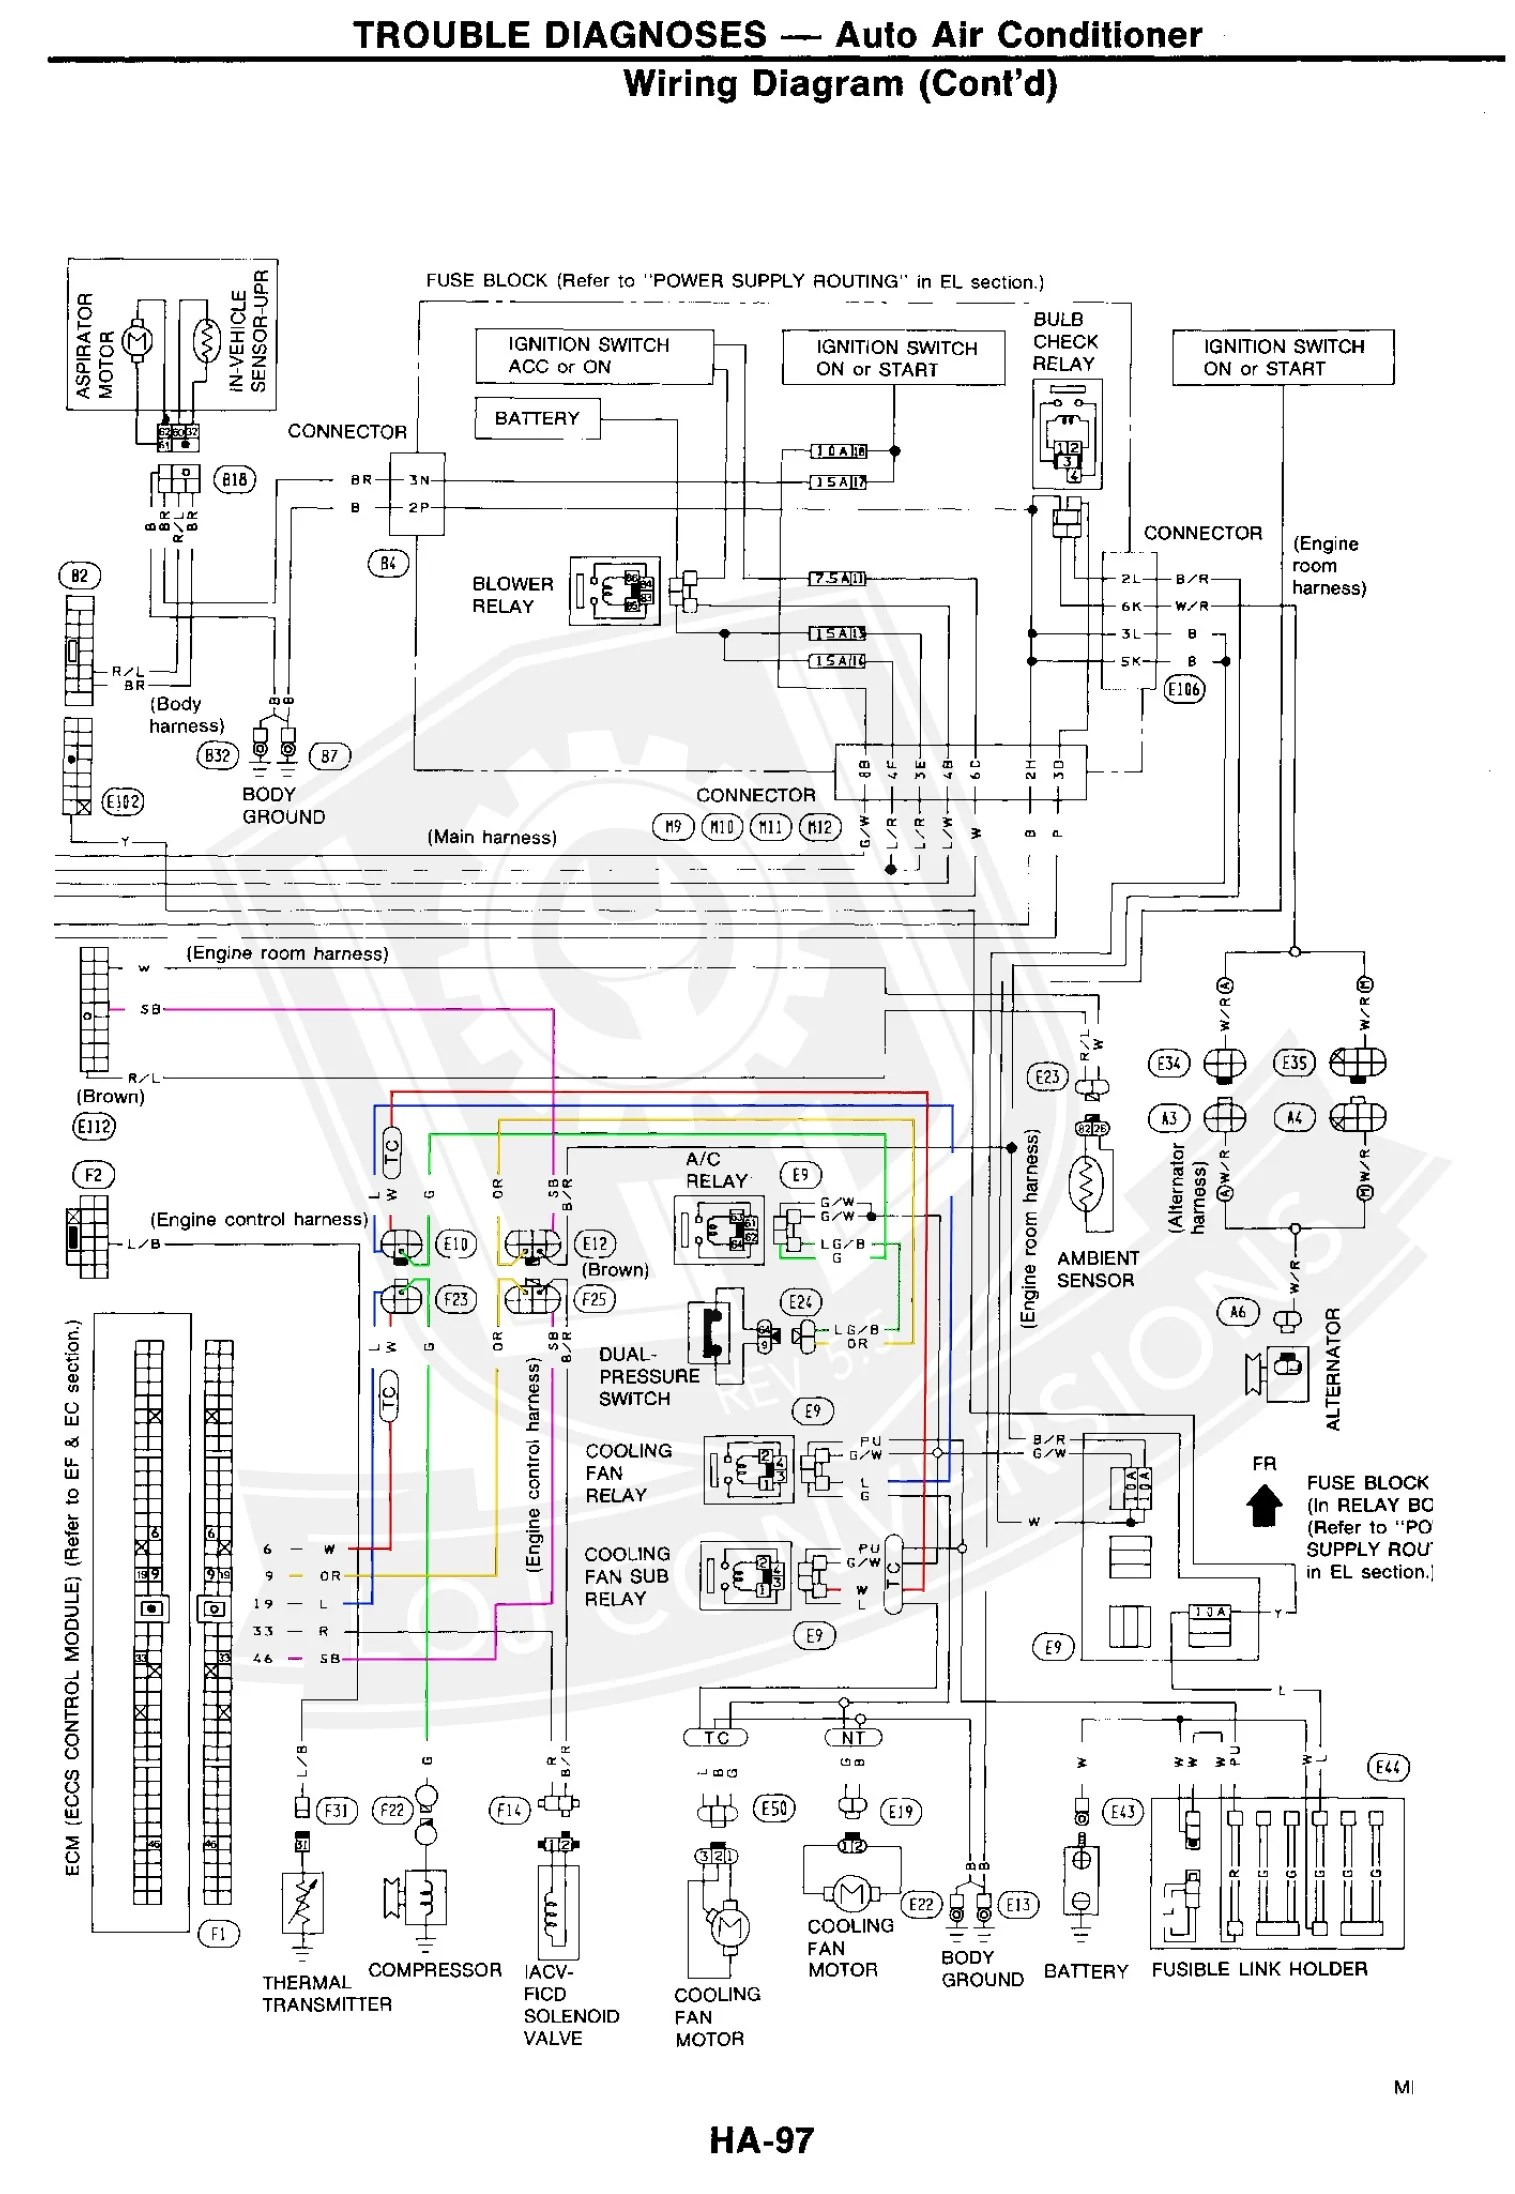 small resolution of 300zx wire diagram wiring diagram centre 87 300zx wiring diagram